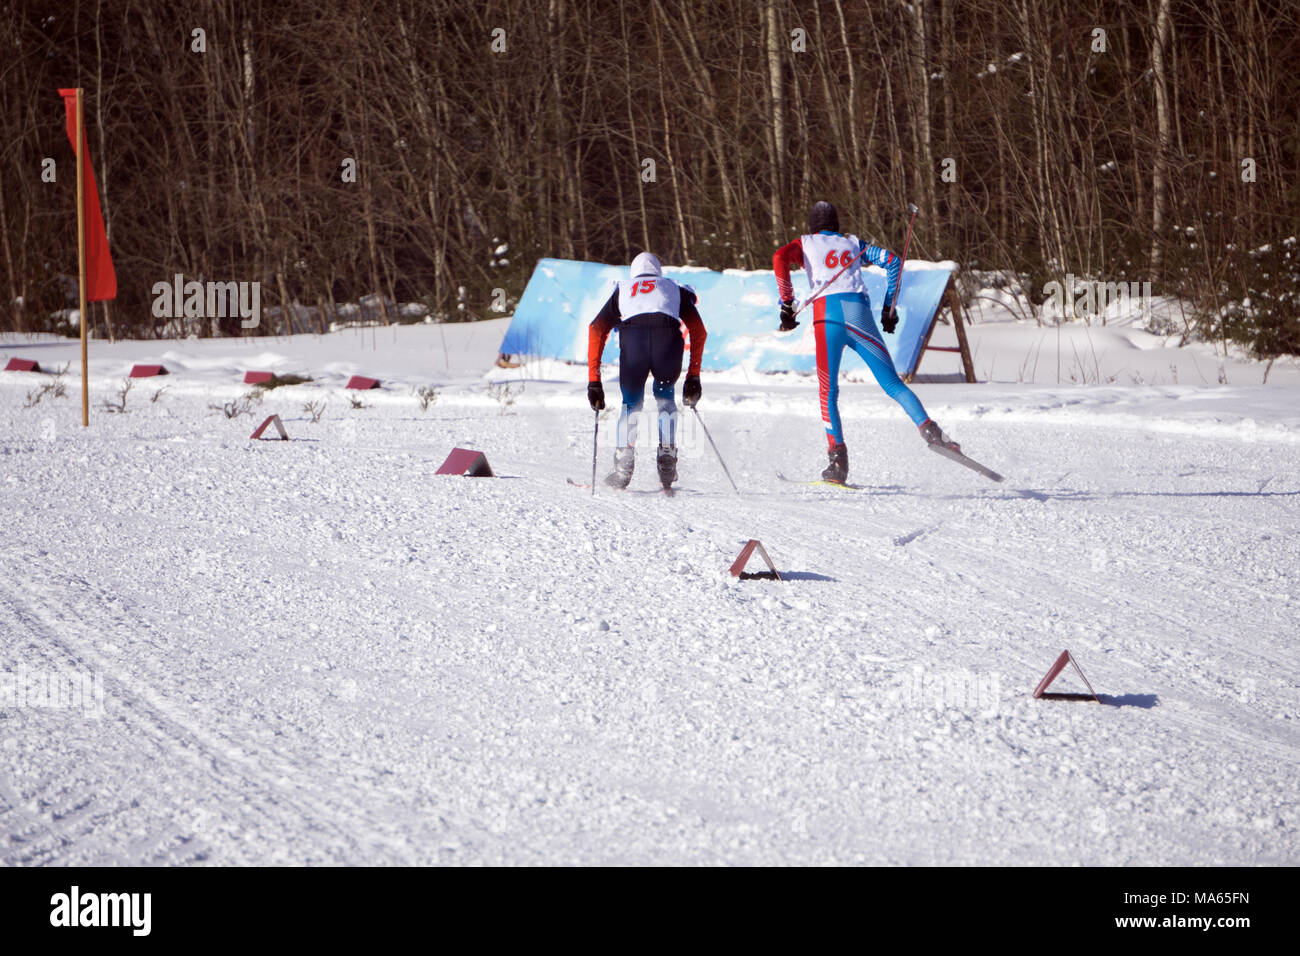 Participants of traditional mass skiing competitions finish - Stock Image